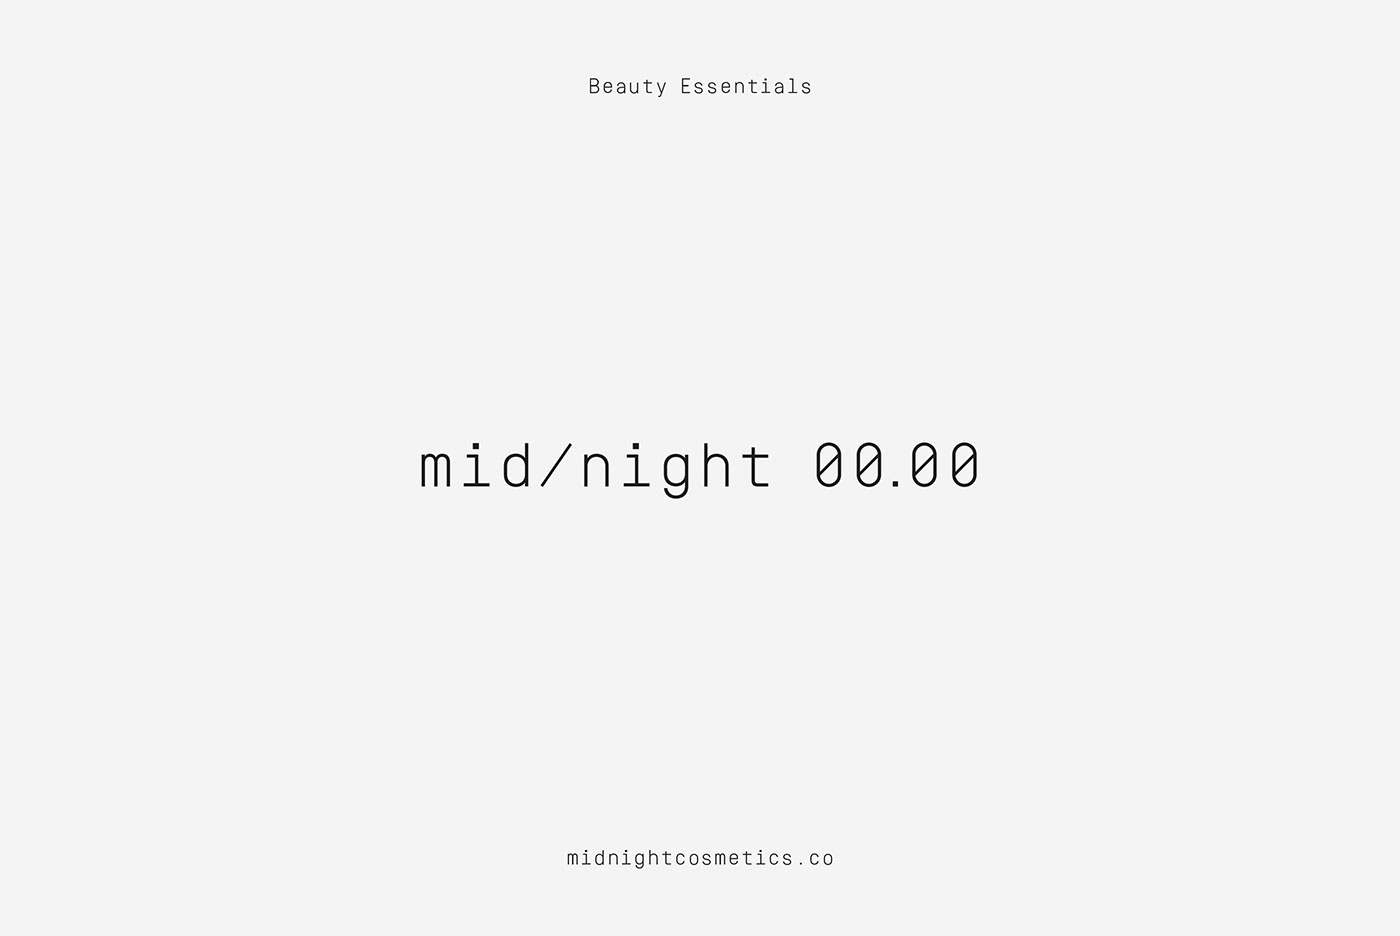 barcelona cosmetics midnight natural Pack Packaging roser padres soap